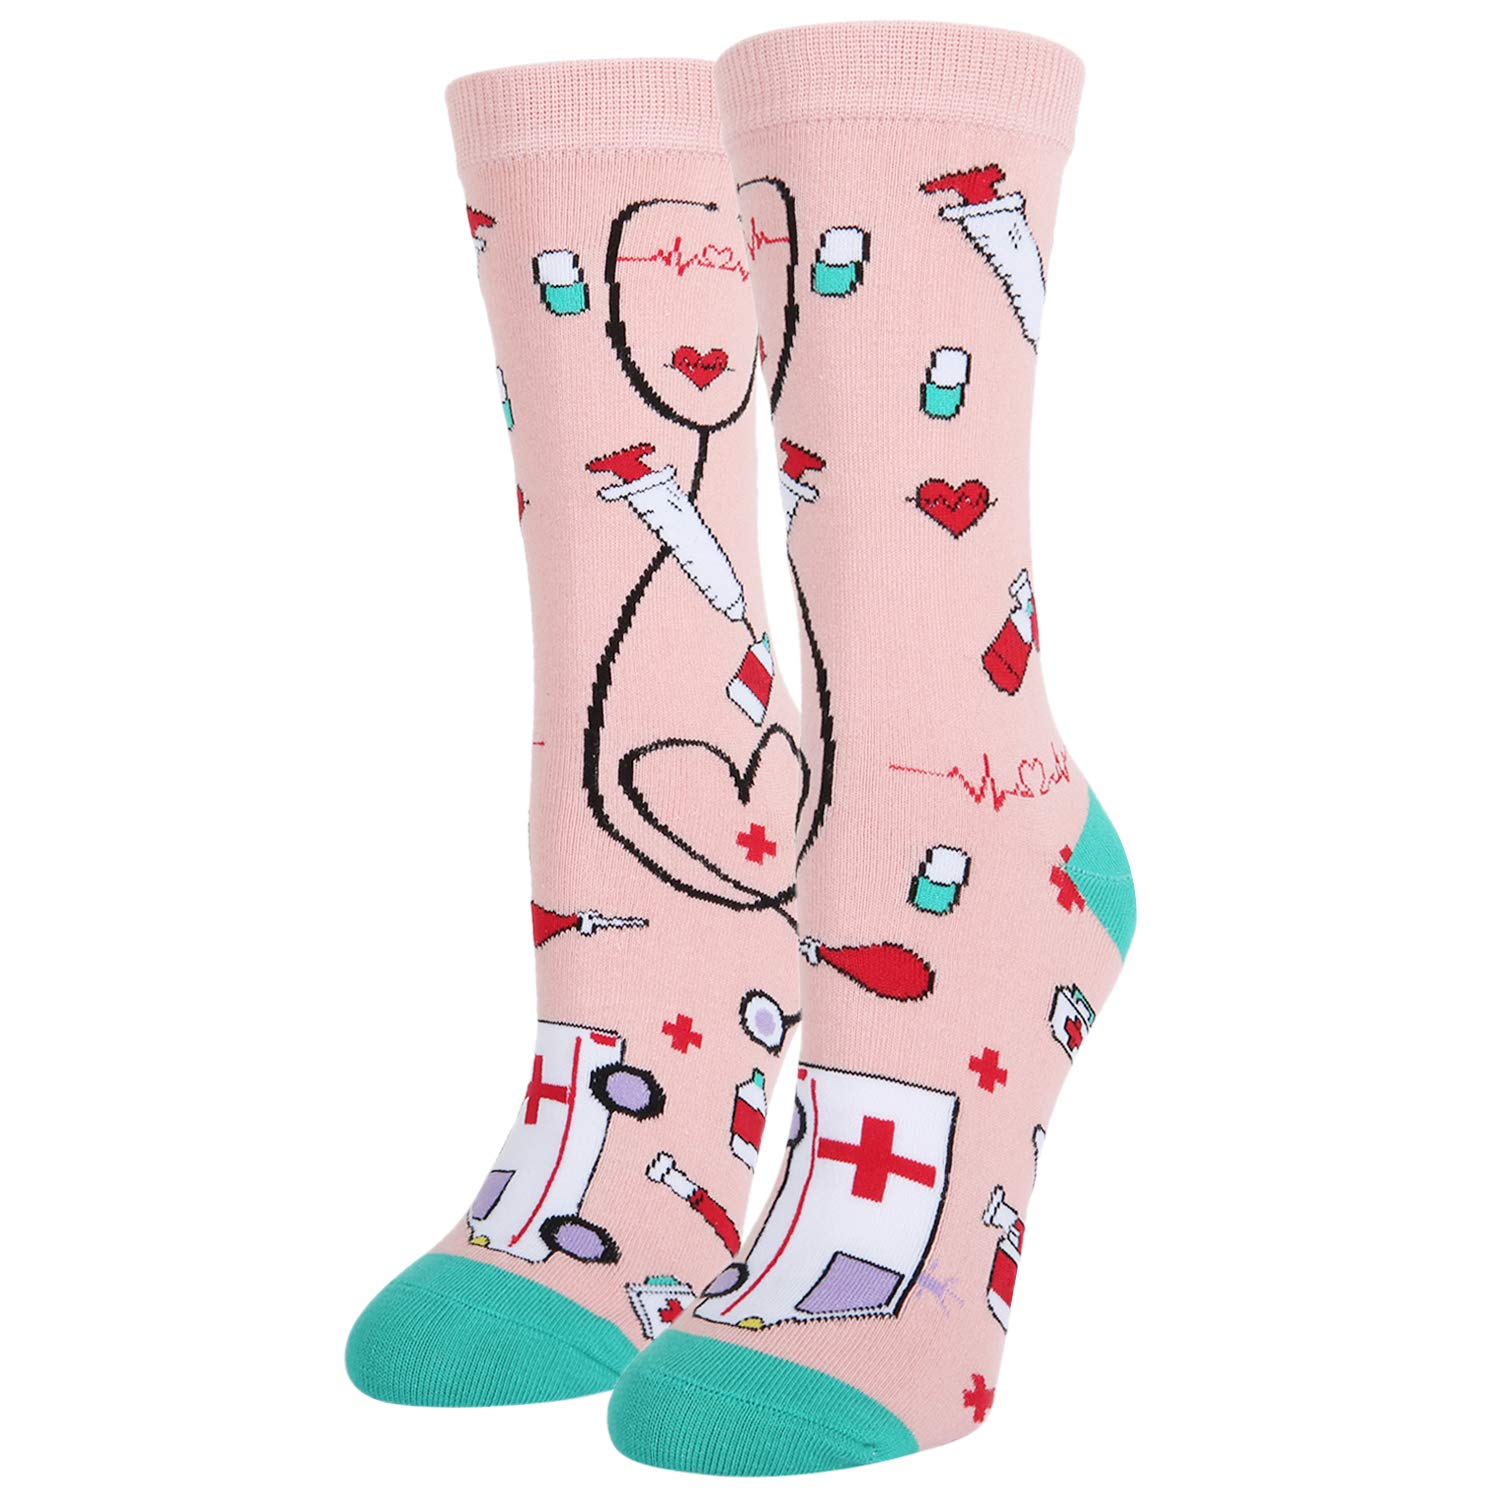 Women's Novelty Crazy Teeth Tool Crew Socks